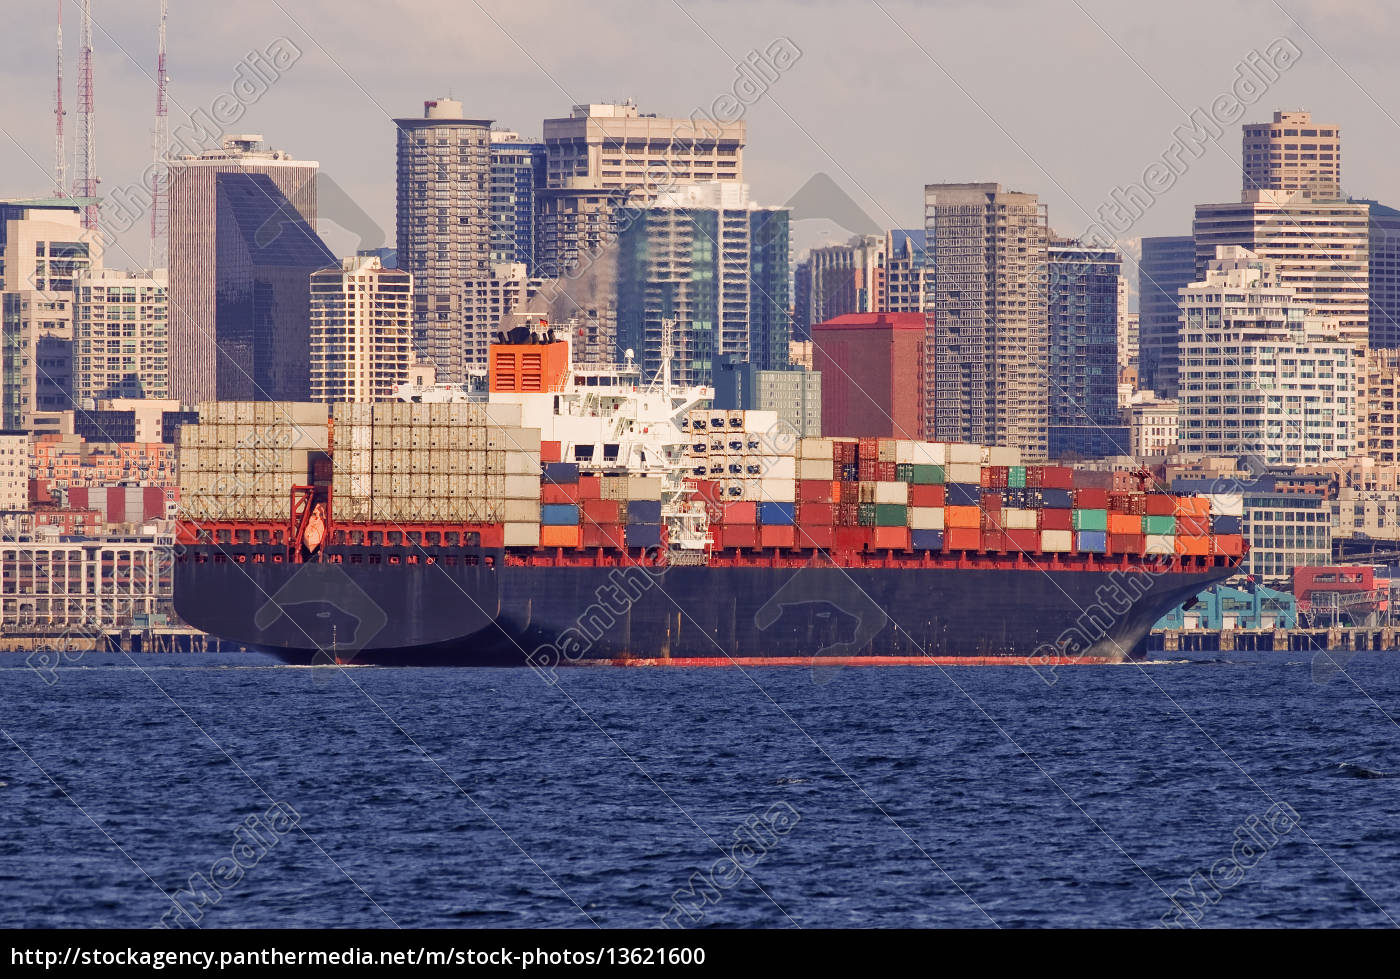 large, cargo, ship, in, the, harbor - 13621600